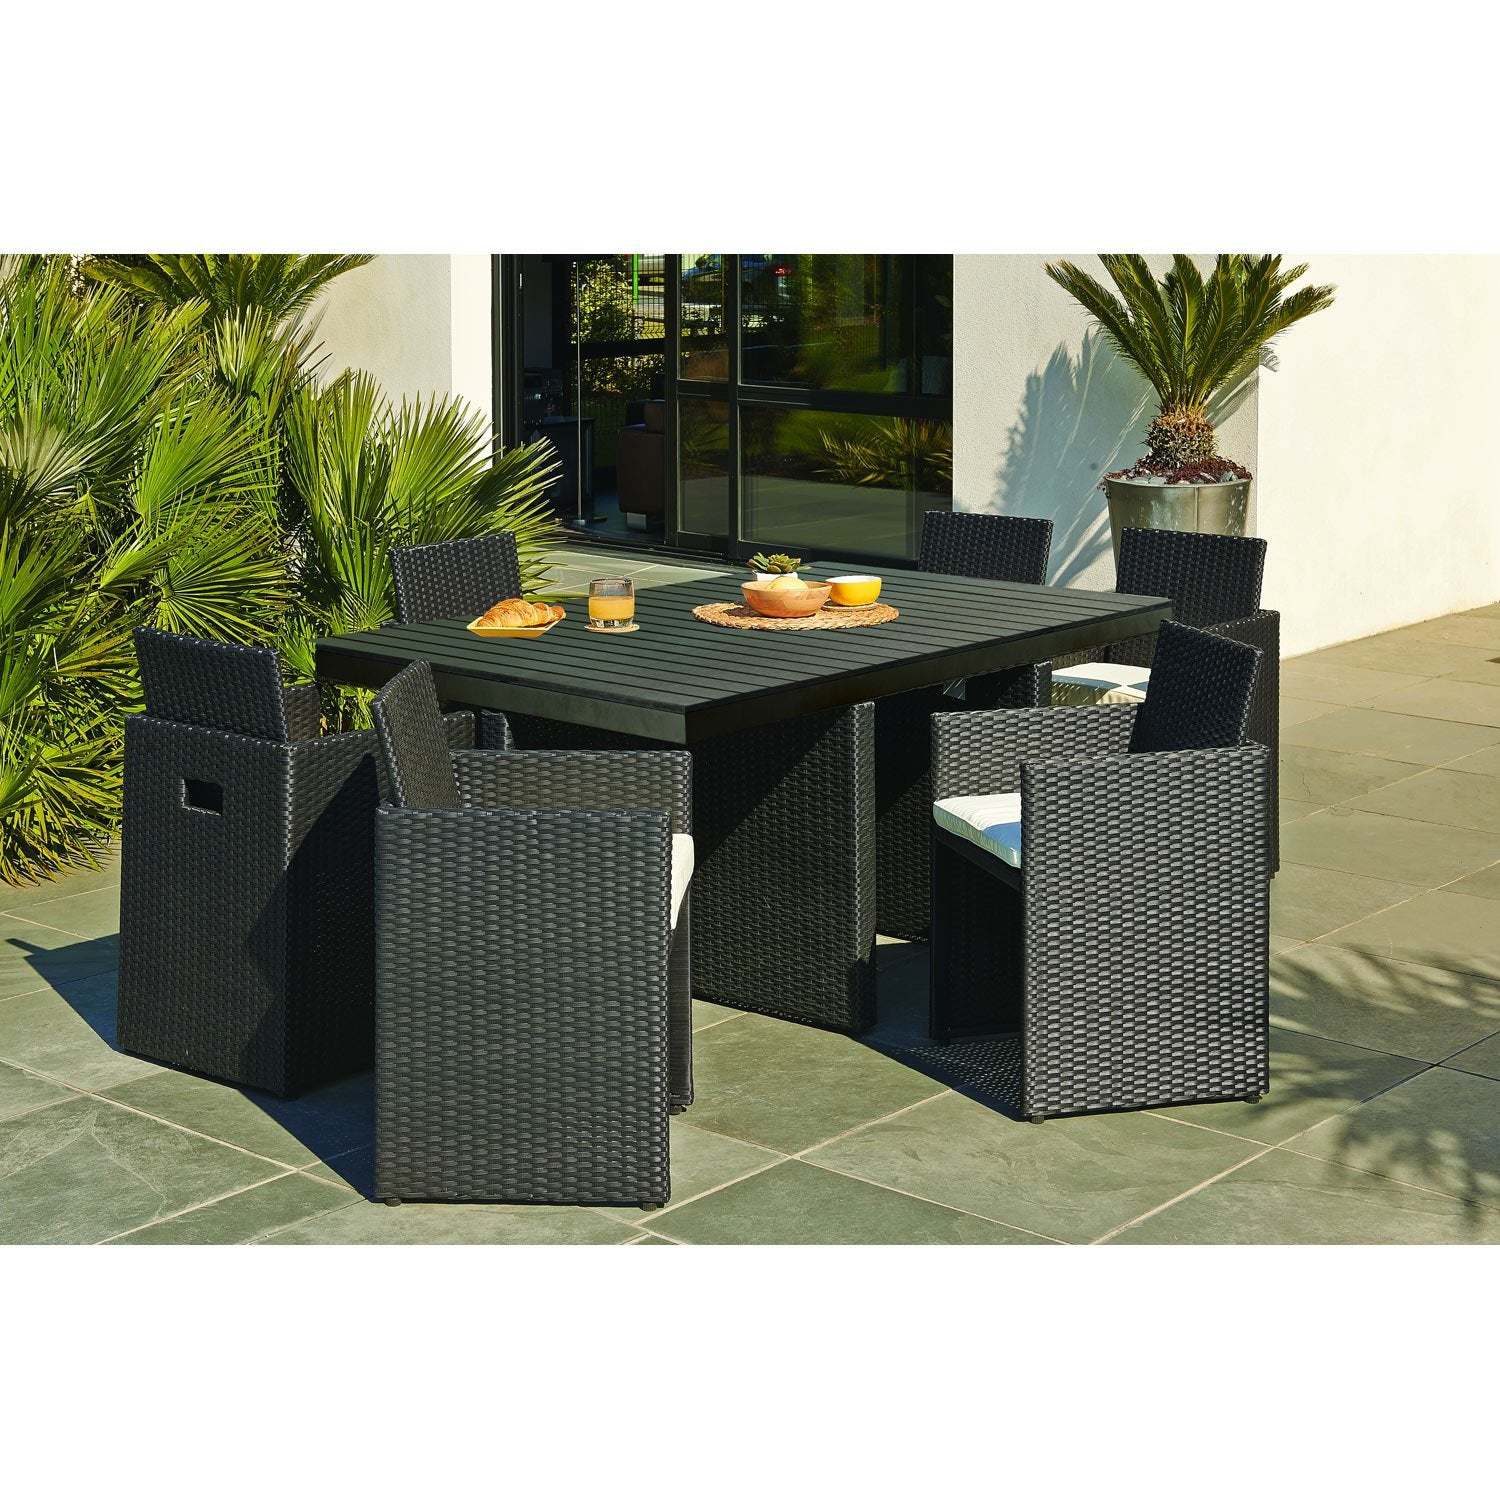 Salon de jardin encastrable r sine tress e noir 1 table 6 fauteuils leroy - Salon de jardin polypropylene ...